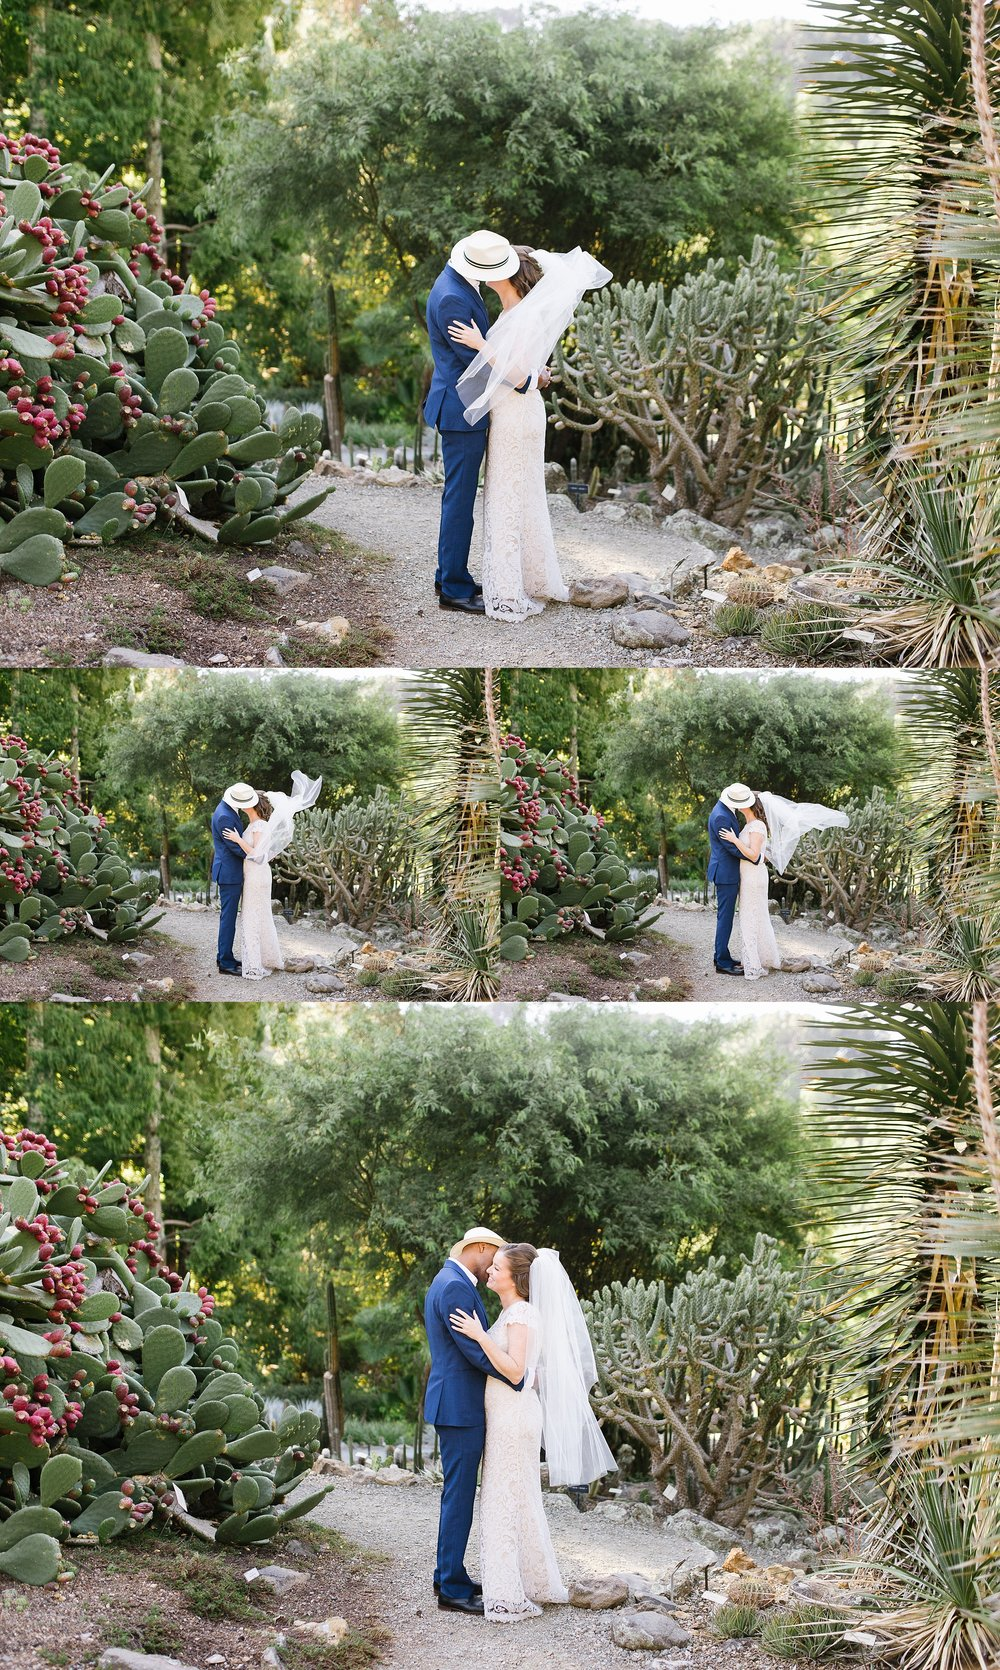 ucberkeley_botanical_redwoods_outdoor_wedding_jennyrez_cdp_0009.jpg